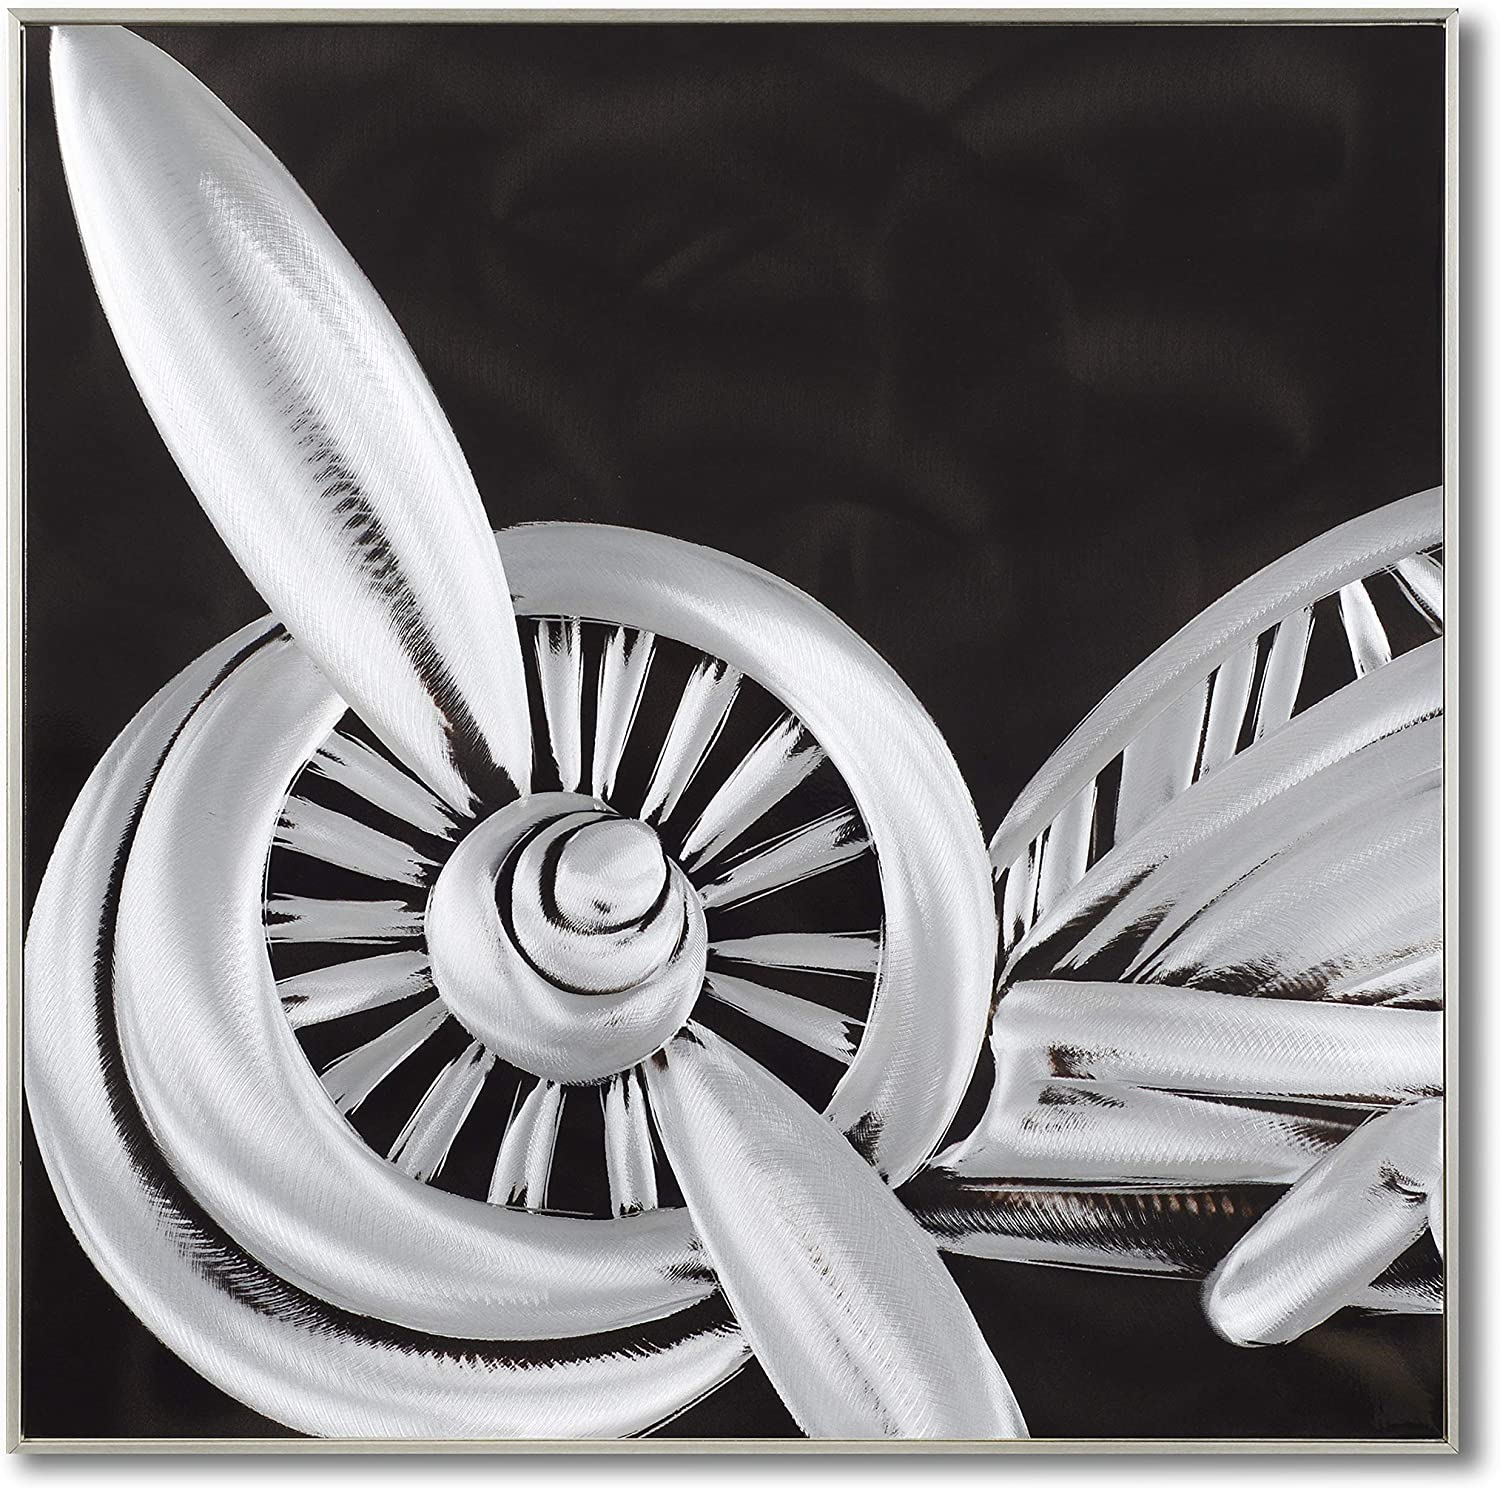 Yihui Arts Black And White Metal Wall Art Airplane Pictures For Living Room Decoration (Airplane 1, 24x24IN)